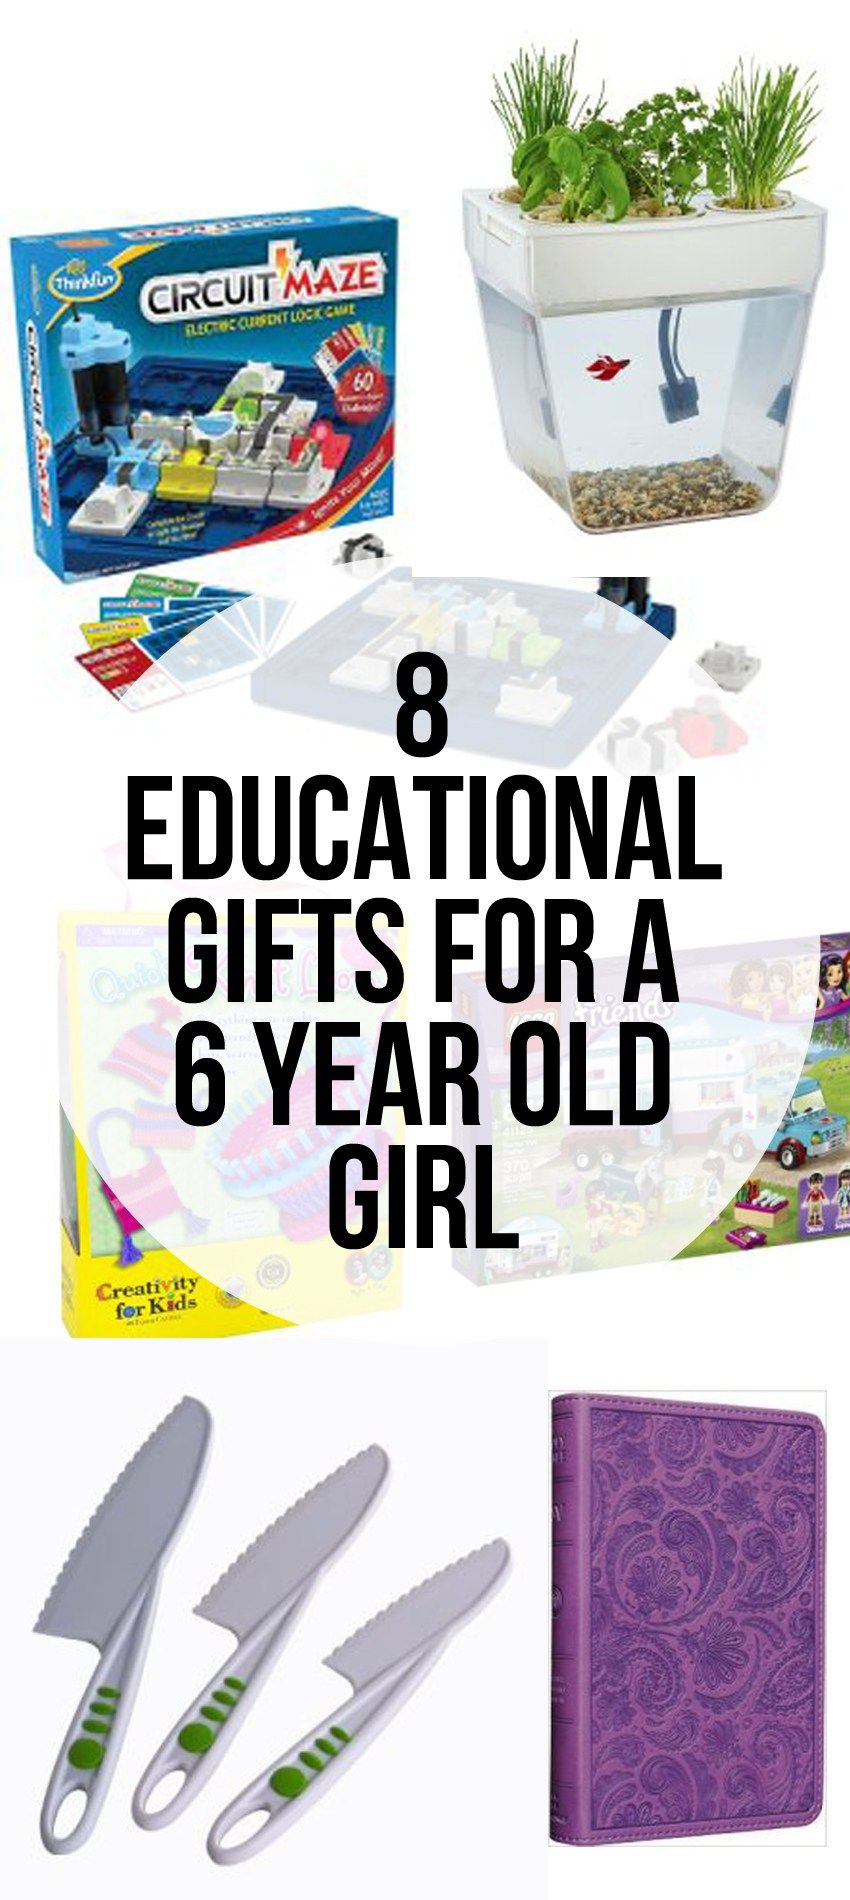 8 Educational Gift Ideas For A 6 Year Old Girl Intentional Homeschooling 6 Year Old Christmas Gifts 8 Year Old Christmas Gifts 6 Year Old Christmas Presents